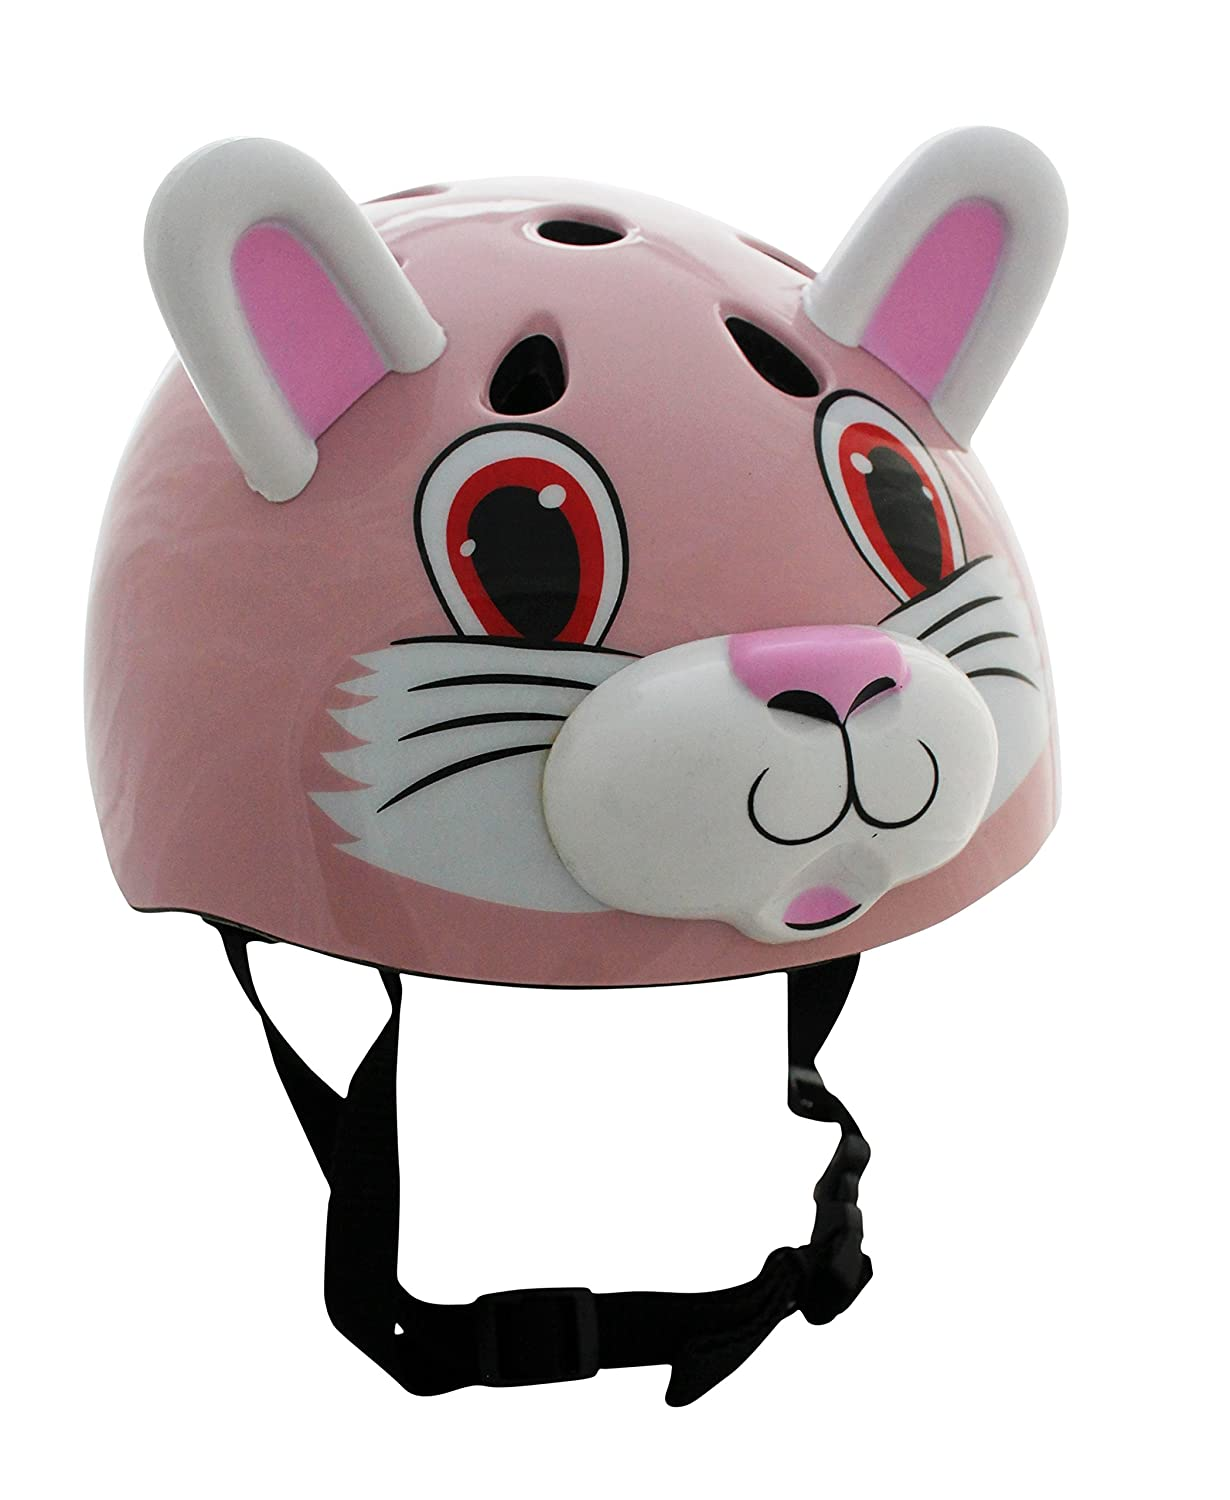 Pink Cat / Rabbit Childrens Safety Cycling Skating Scooter Bike Helmet (Suitable ages 3 - 11) LA Sports